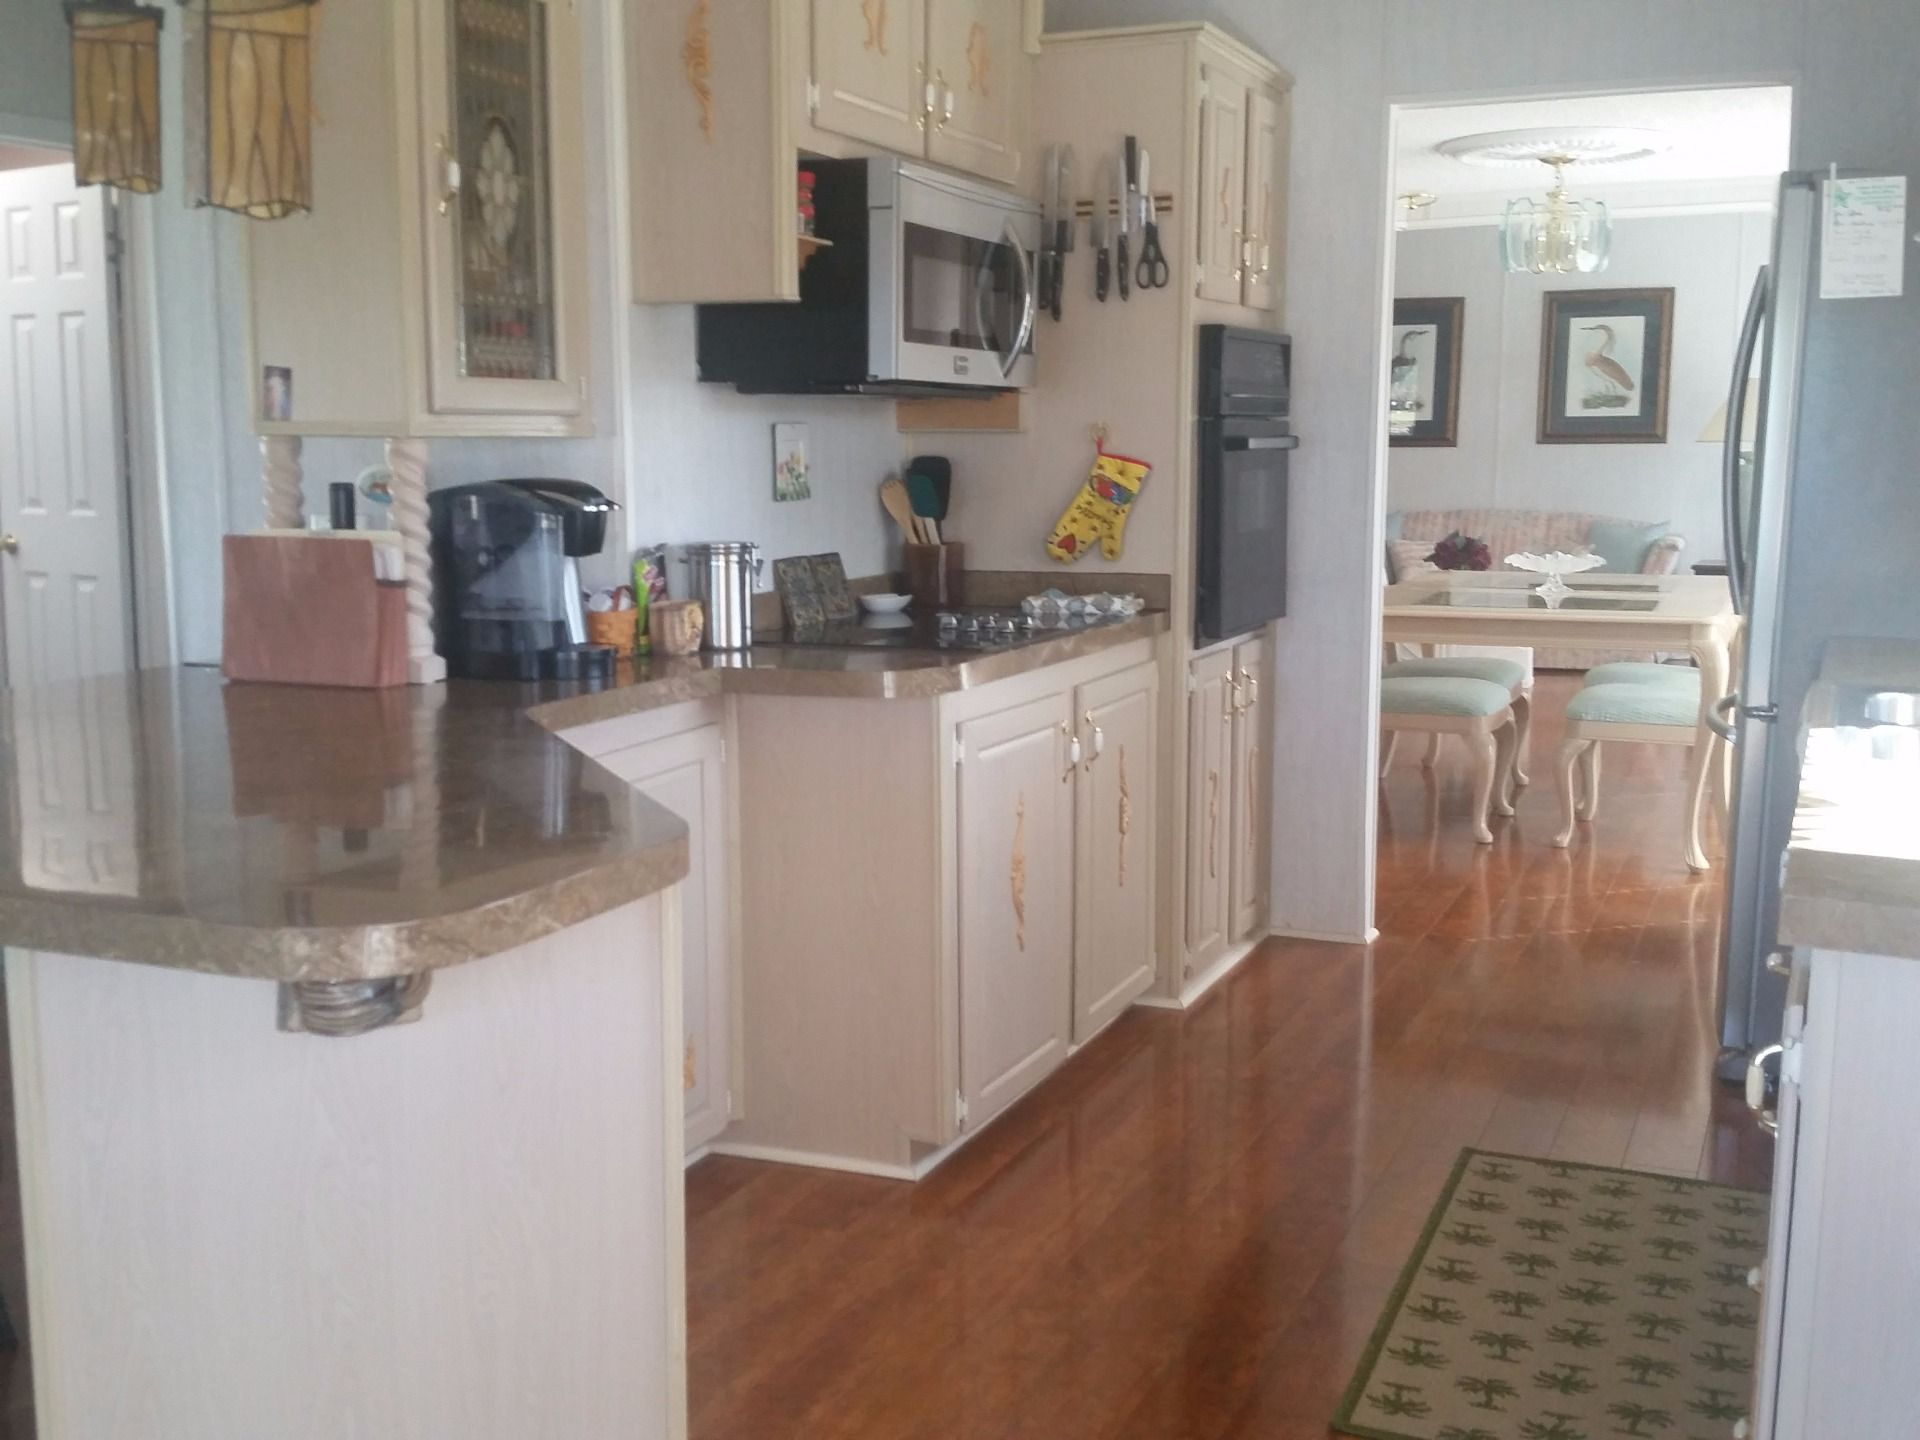 Jaco Manufactured Home For Sale In Vero Beach Fl 32966 Manufactured Homes For Sale Manufactured Home Mobile Homes For Sale